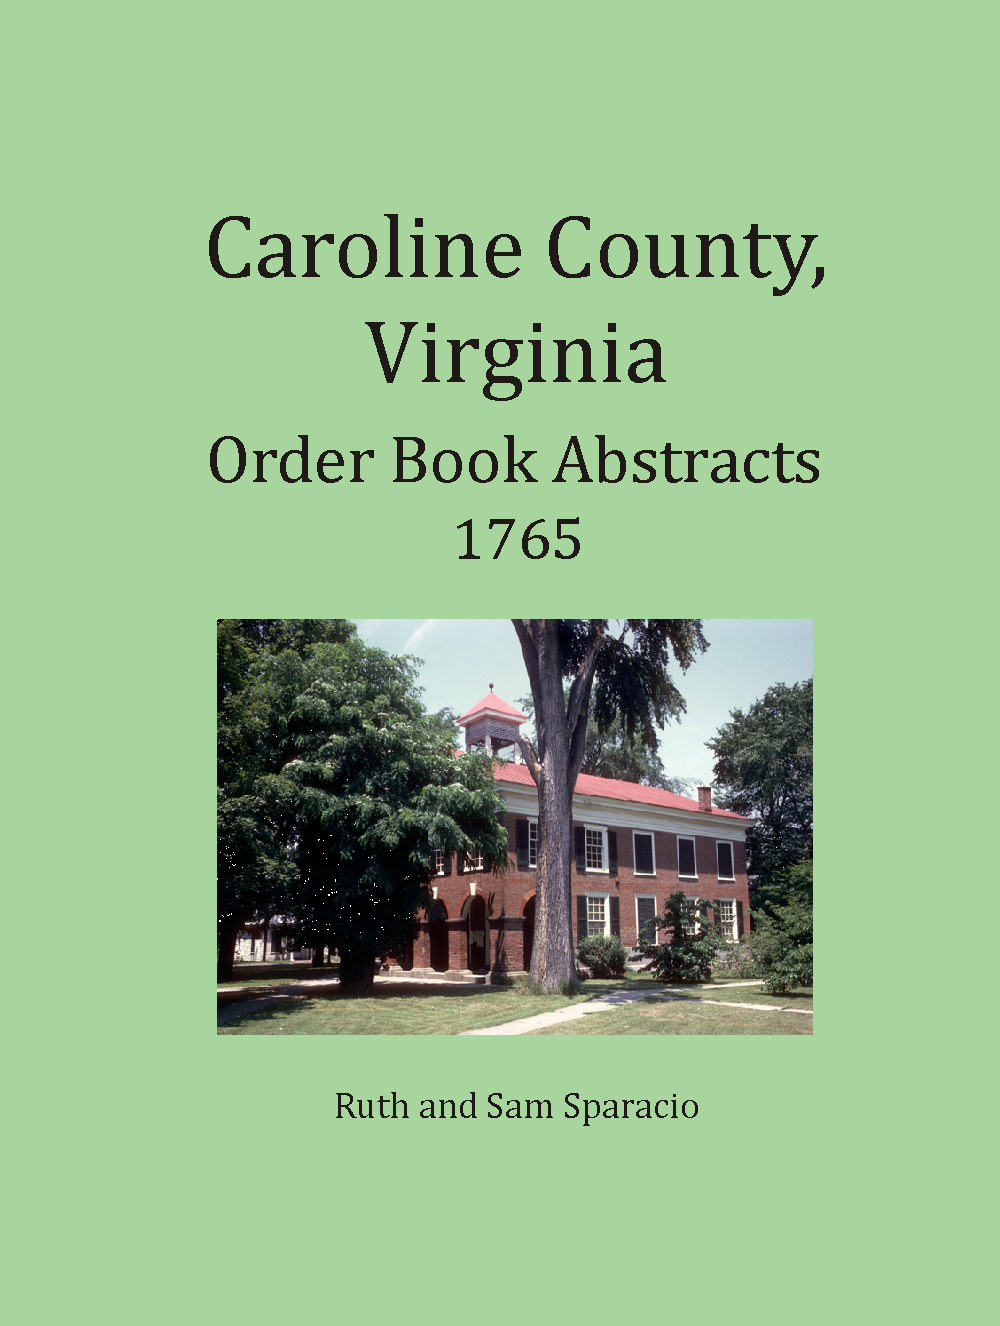 Caroline County Virginia Order Book Abstracts, 1765